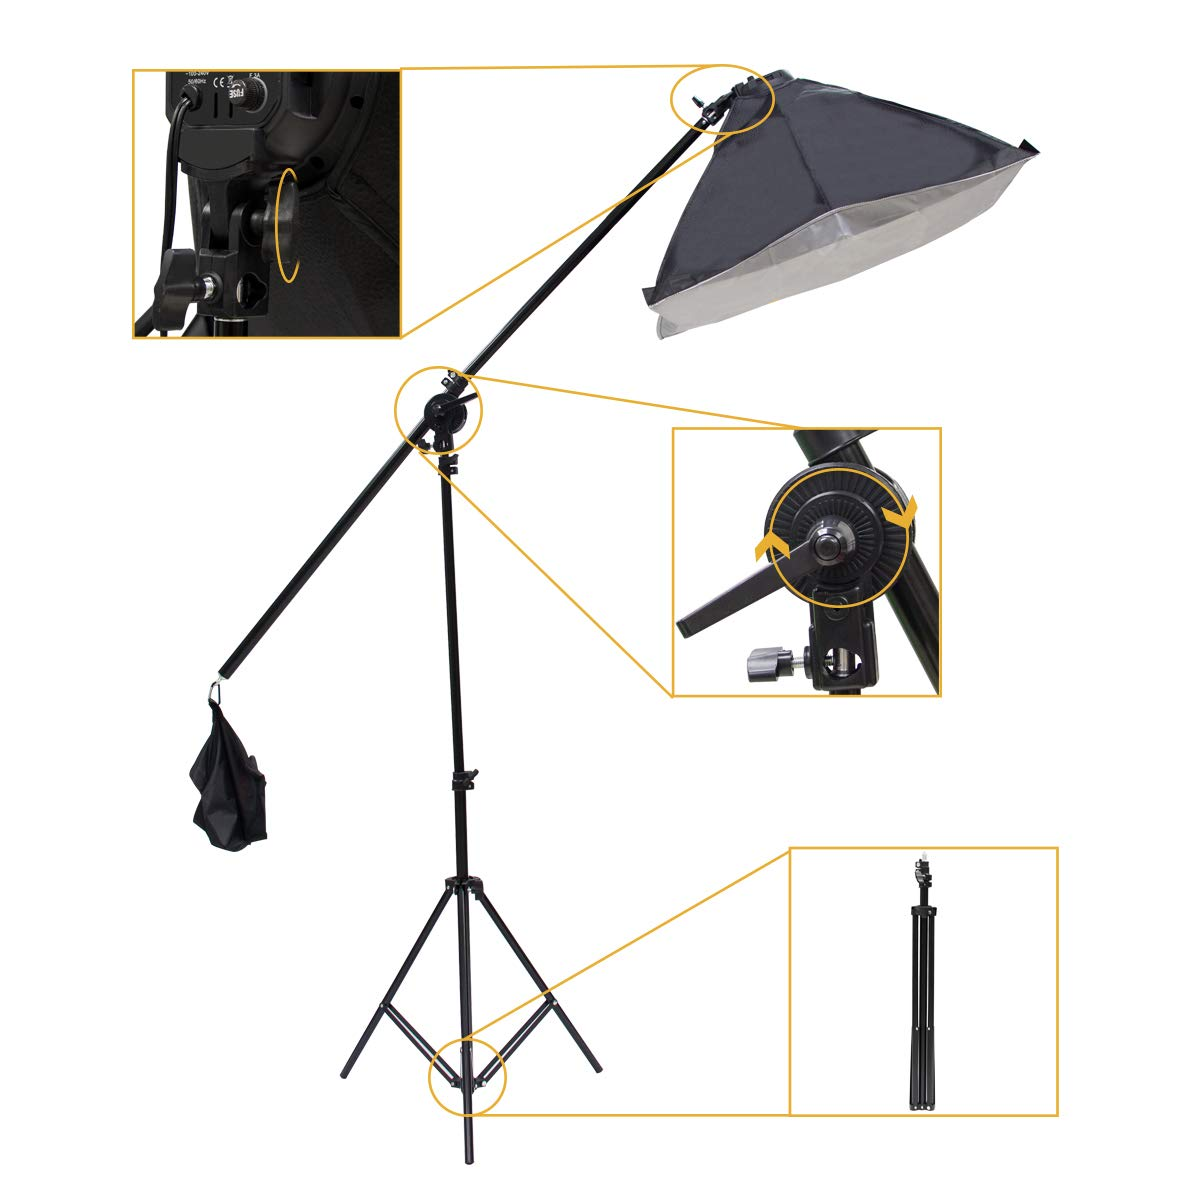 Wisamic Photography Video Studio Lighting Kit, Background Support System 10ft x 6.6ft/2MX3M with 3 Color Backdrop, 3 Umbrella, 3 Softbox, Continuous Lighting Kit for Photo Video Shooting Photography by Wisamic (Image #6)